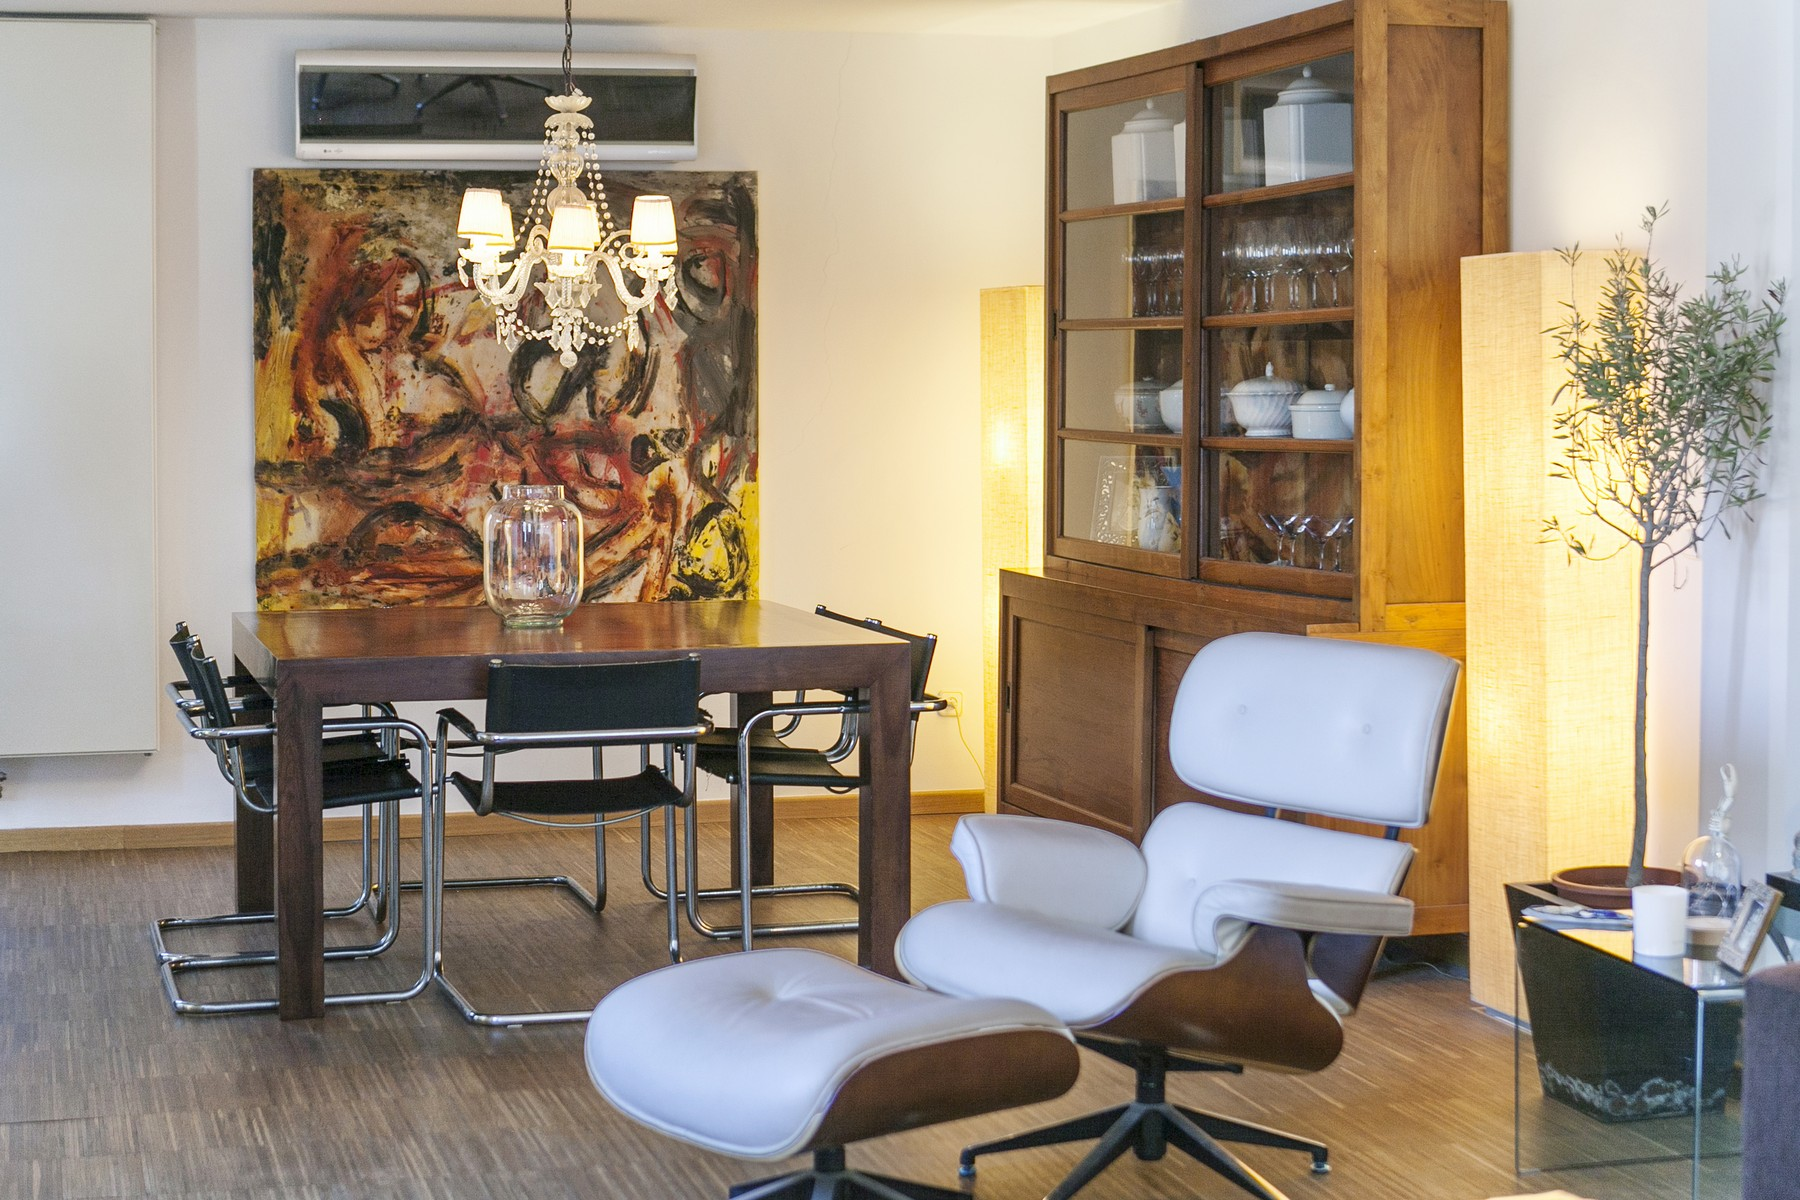 Maison unifamiliale pour l Vente à Penthouse-duplex with terrace in the Old Town Palma, Majorque, 07003 Espagne